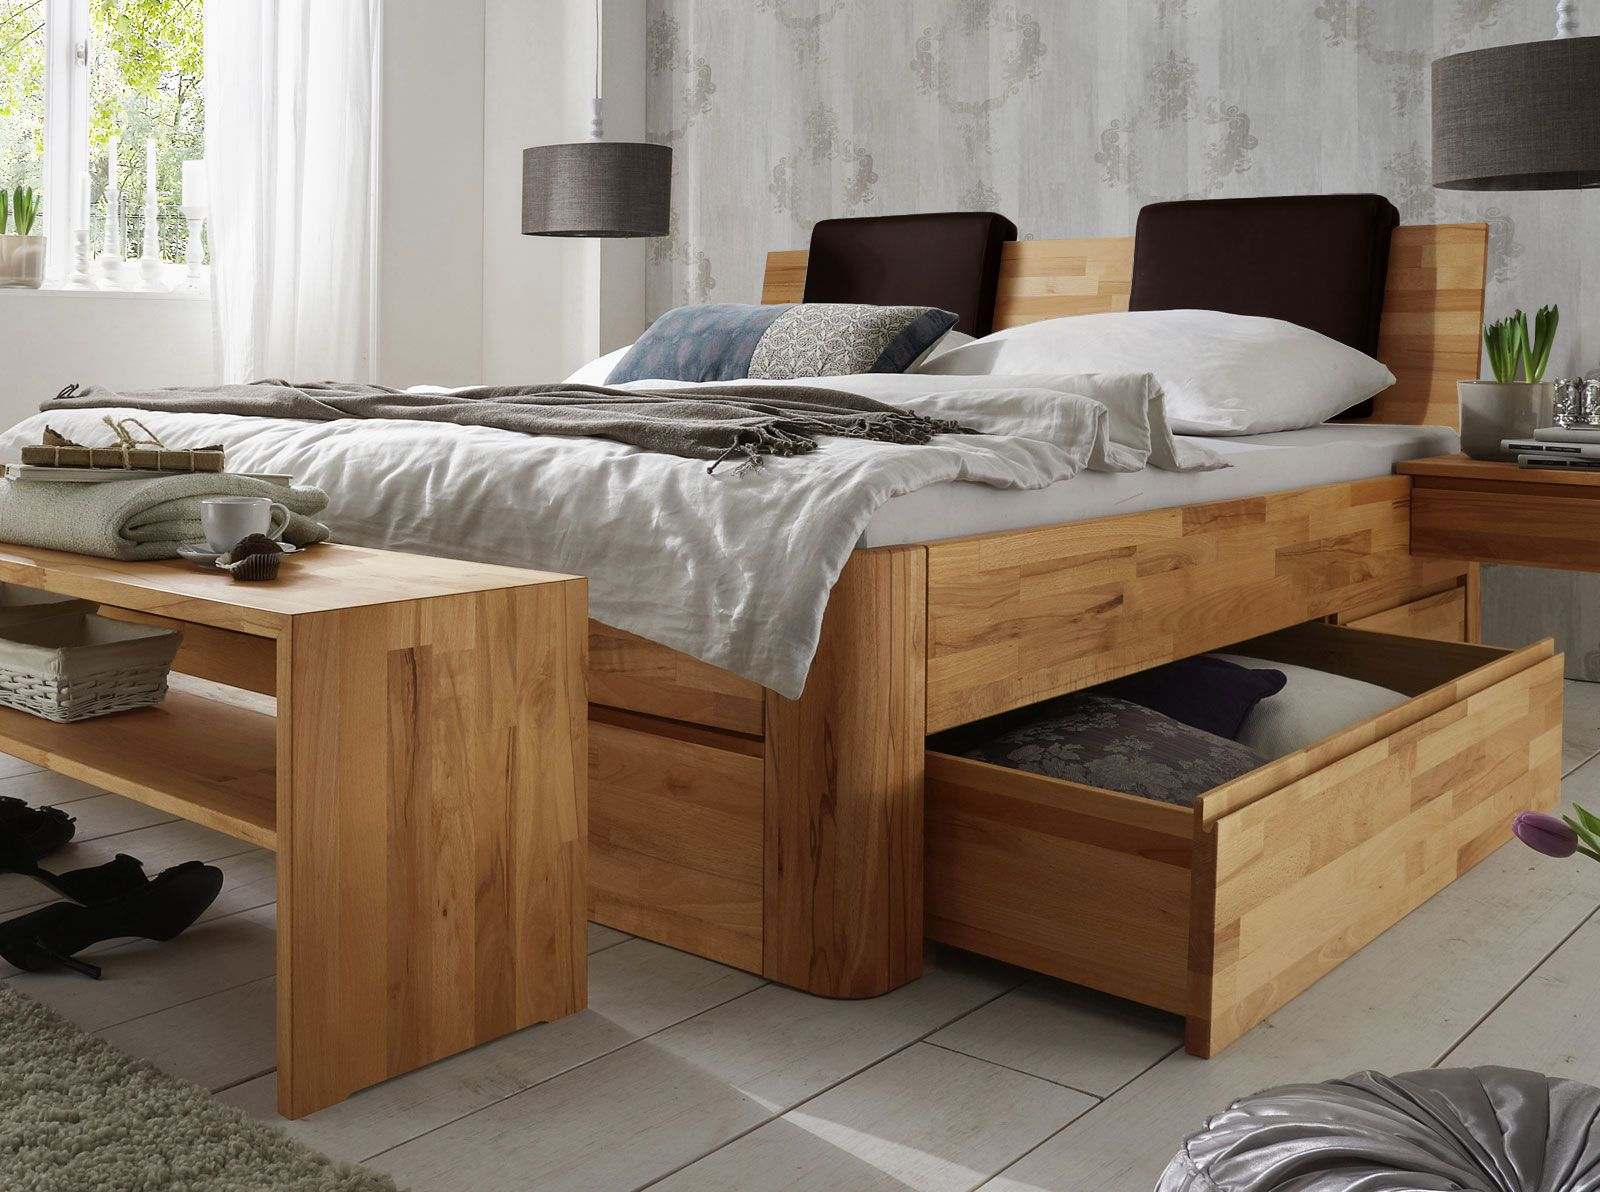 schubkasten doppelbett zarbo dunkelbraun kunstleder und doppelbett. Black Bedroom Furniture Sets. Home Design Ideas